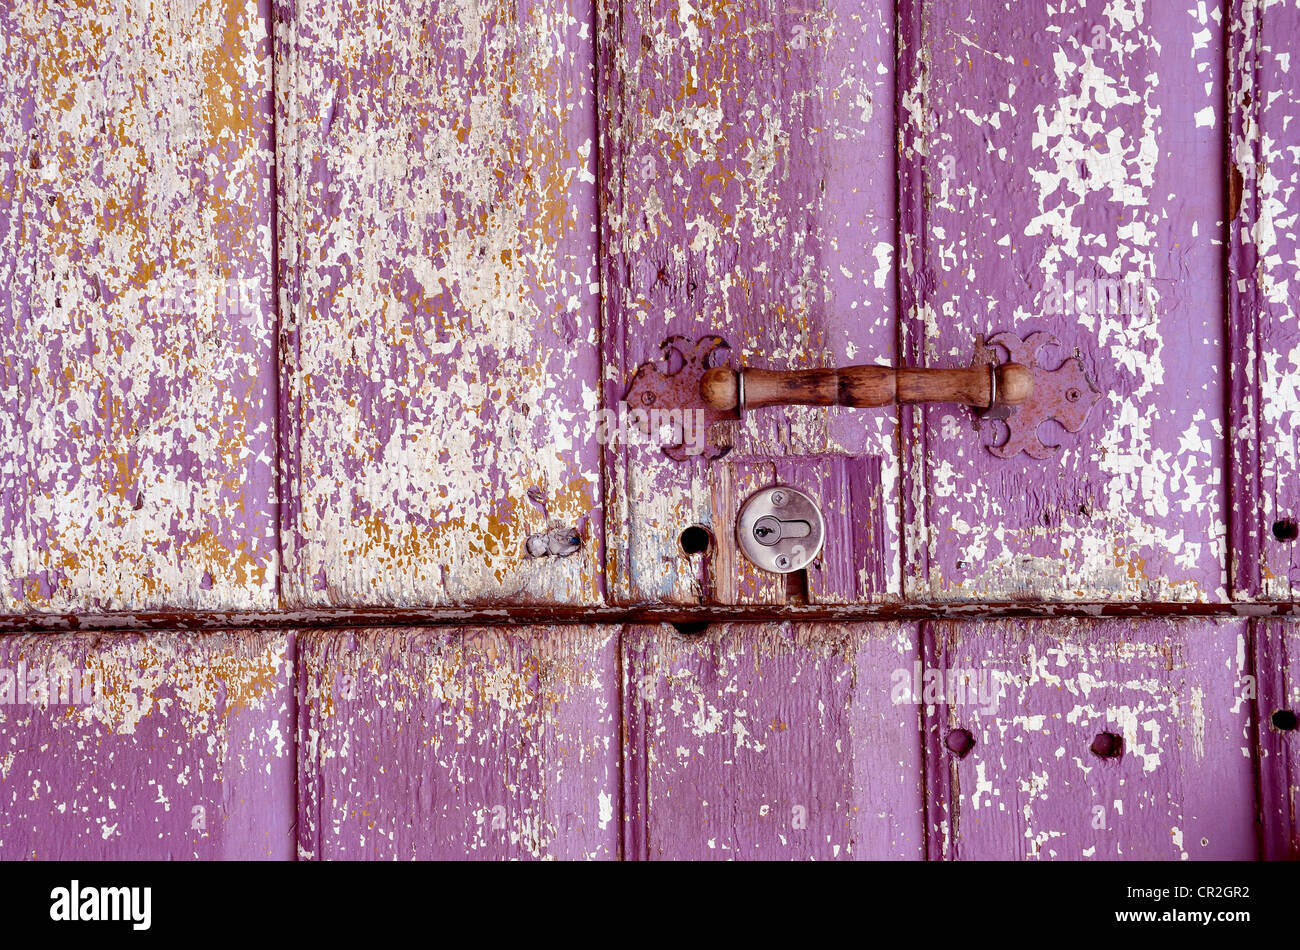 Background Of An Old Painted, Crumbled Door. Handle On Purple Wooden Planks.